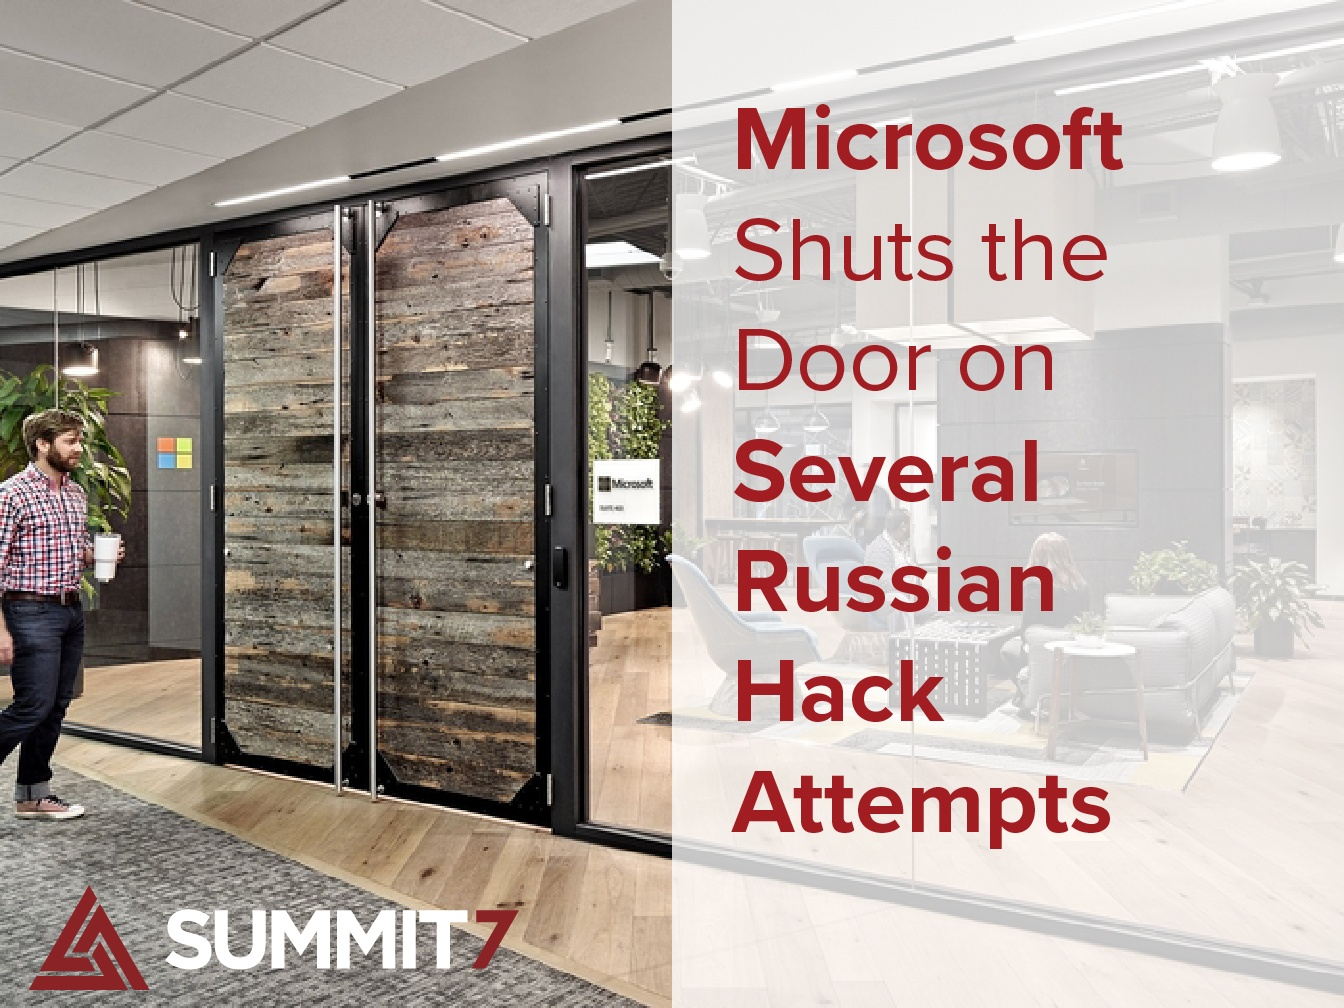 MSRussianHack4